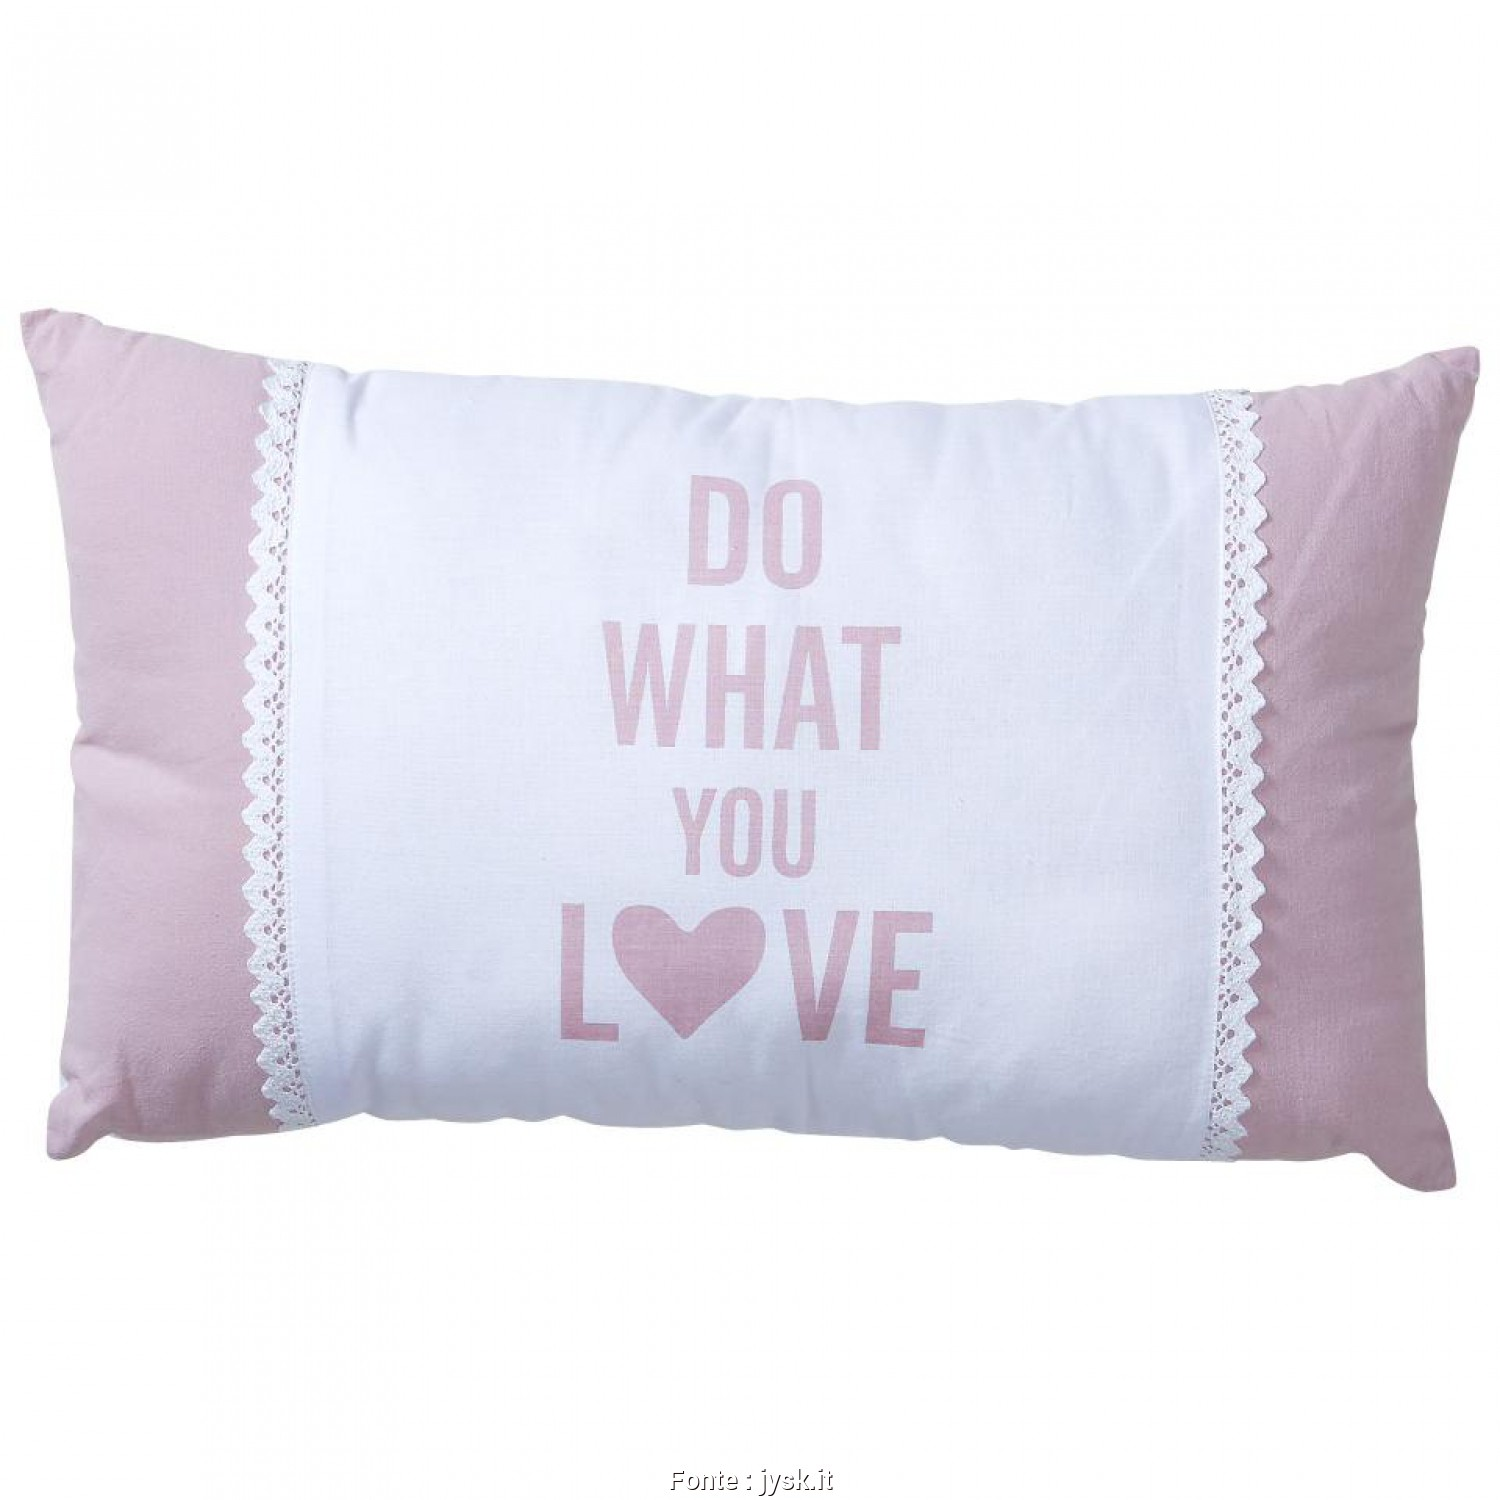 Cuscini Decorativi Jysk, Freddo Cuscino Decorativo Romantic (30X50, Do What, Love)